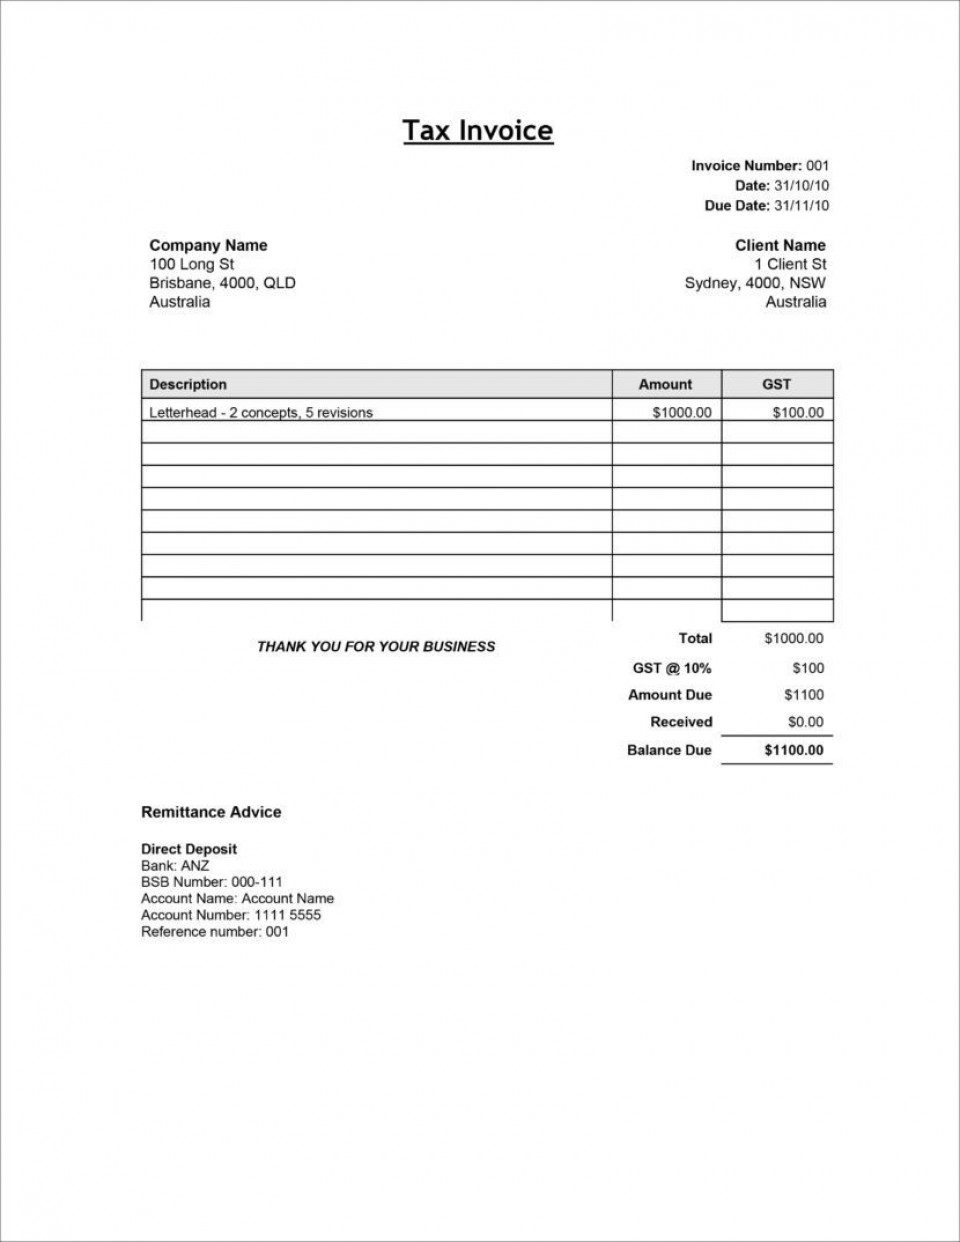 003 Marvelou Rent Receipt Template Docx Photo  Format India Car Rental Bill Doc960